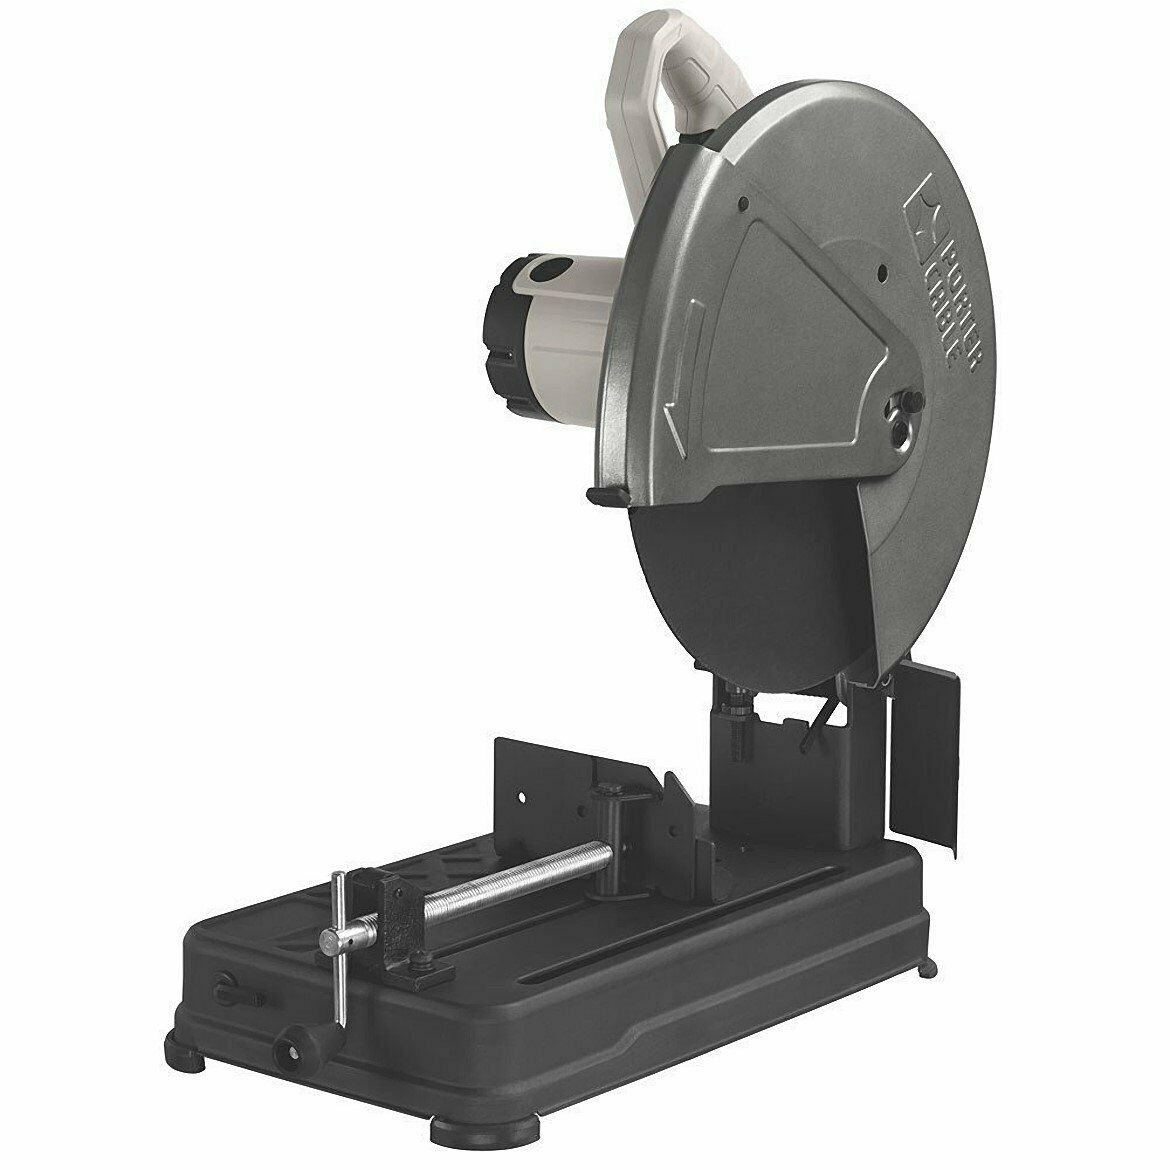 porter cable pce700 chop saw isolated on white background